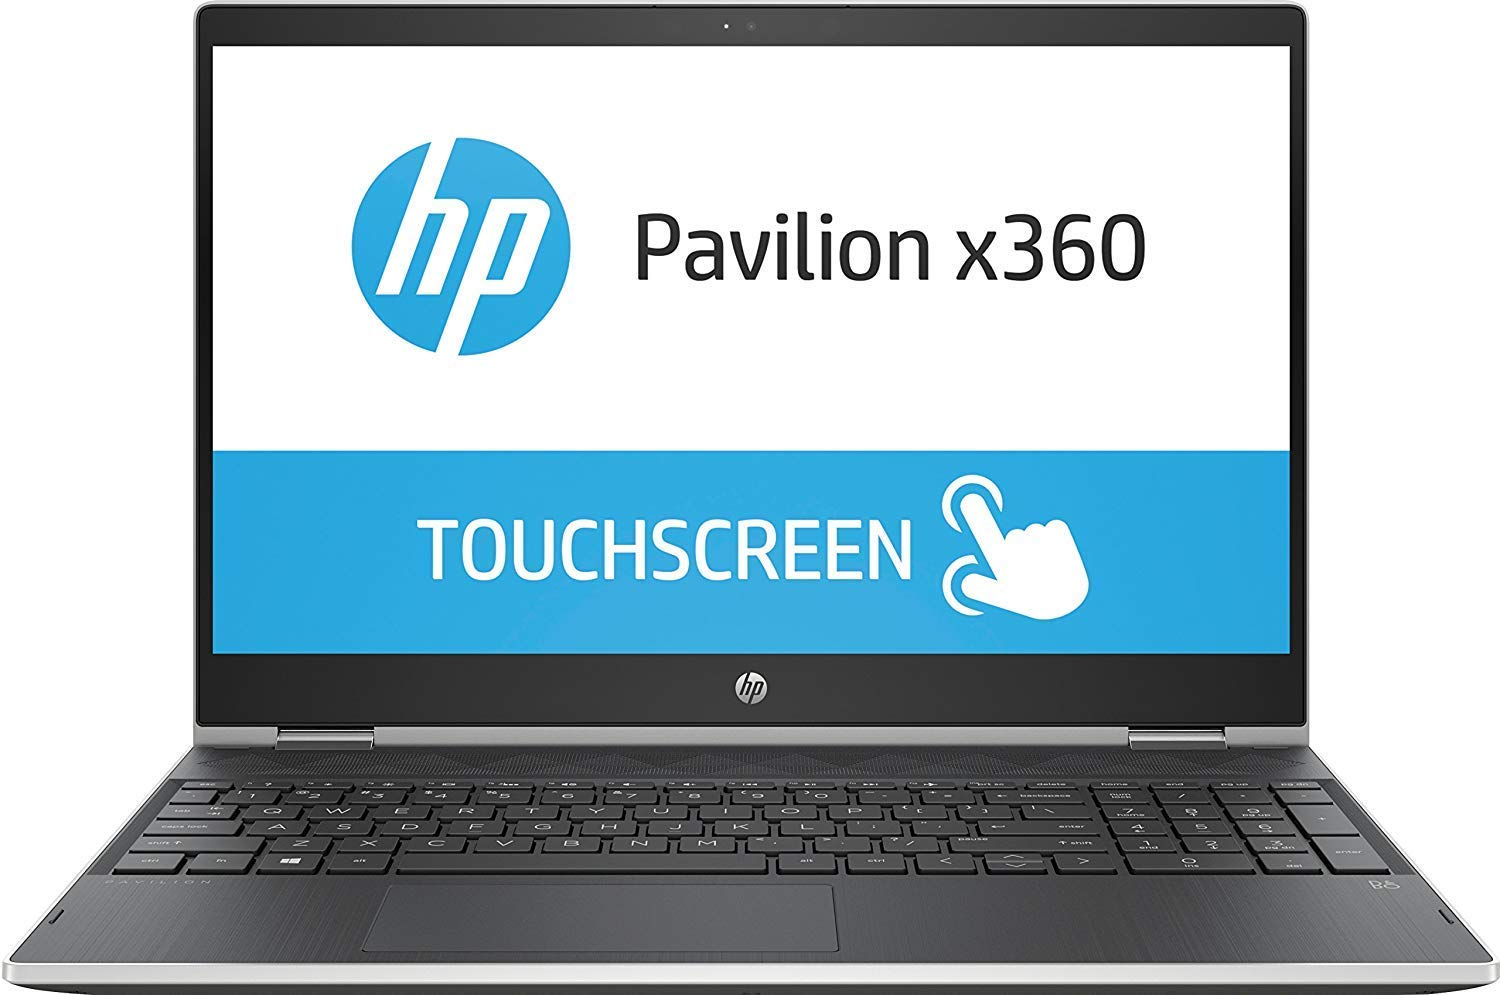 HP Pavilion x360 15 (15-cr0000) review – can't fare with the